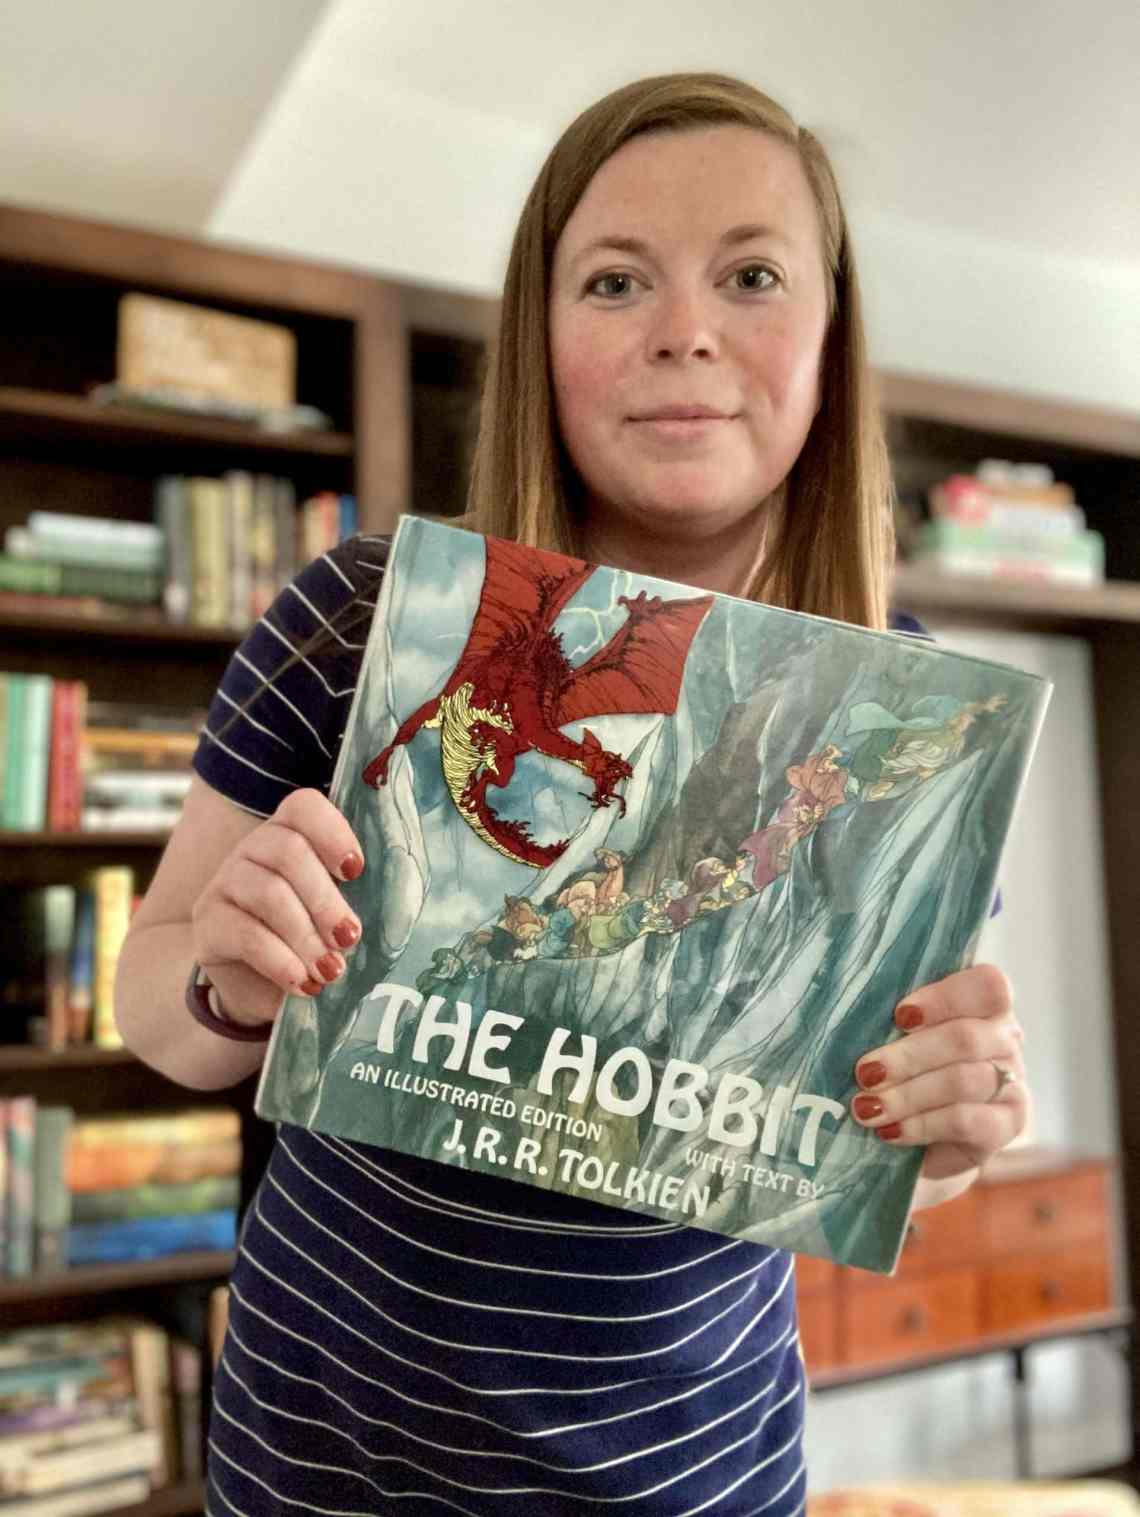 my favorite childhood books includes Tolkien's The Hobbit